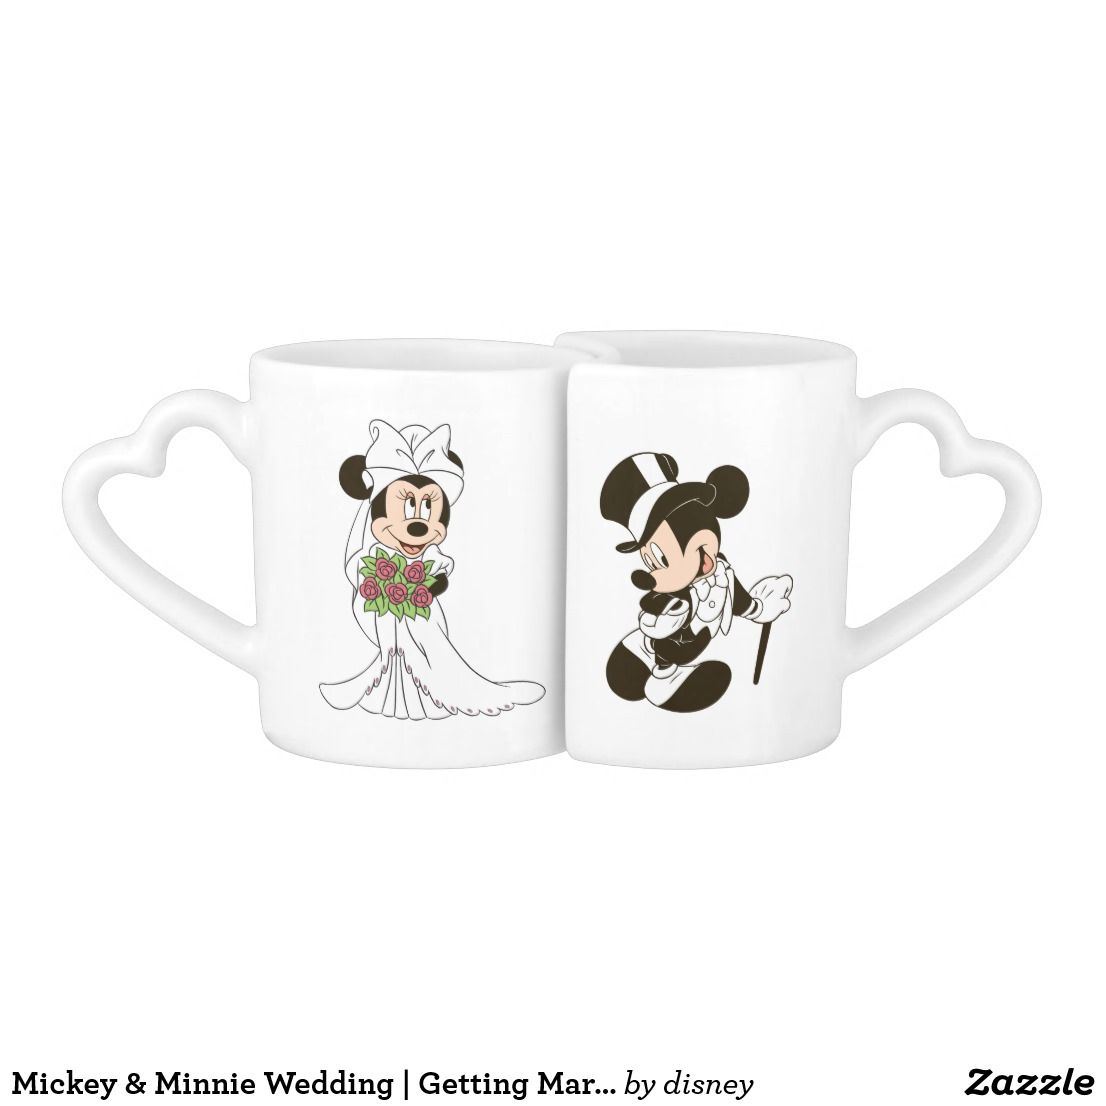 Mickey & Minnie Wedding | Getting Married Coffee Mug Set | Funny ...